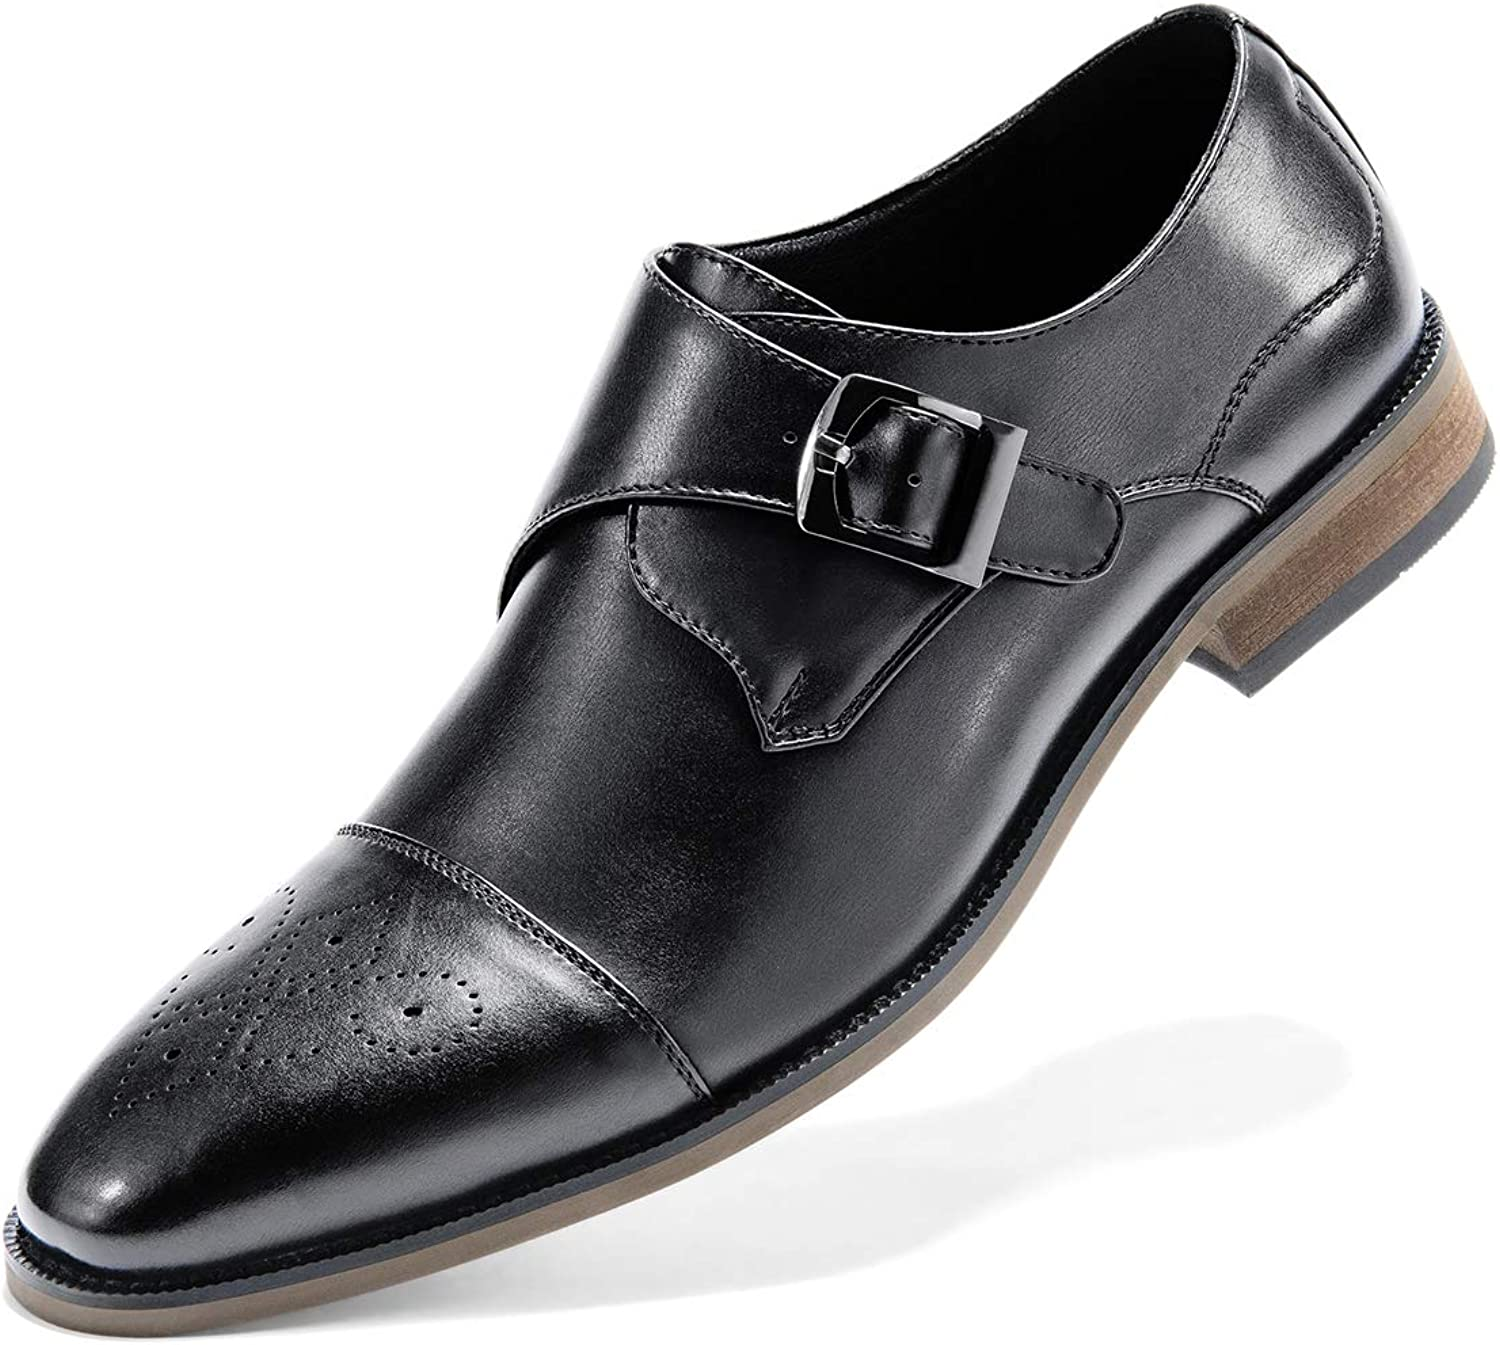 Men's Dress shoes Slip On Classic Plain-Toe Loafer Monk shoes shoes De men